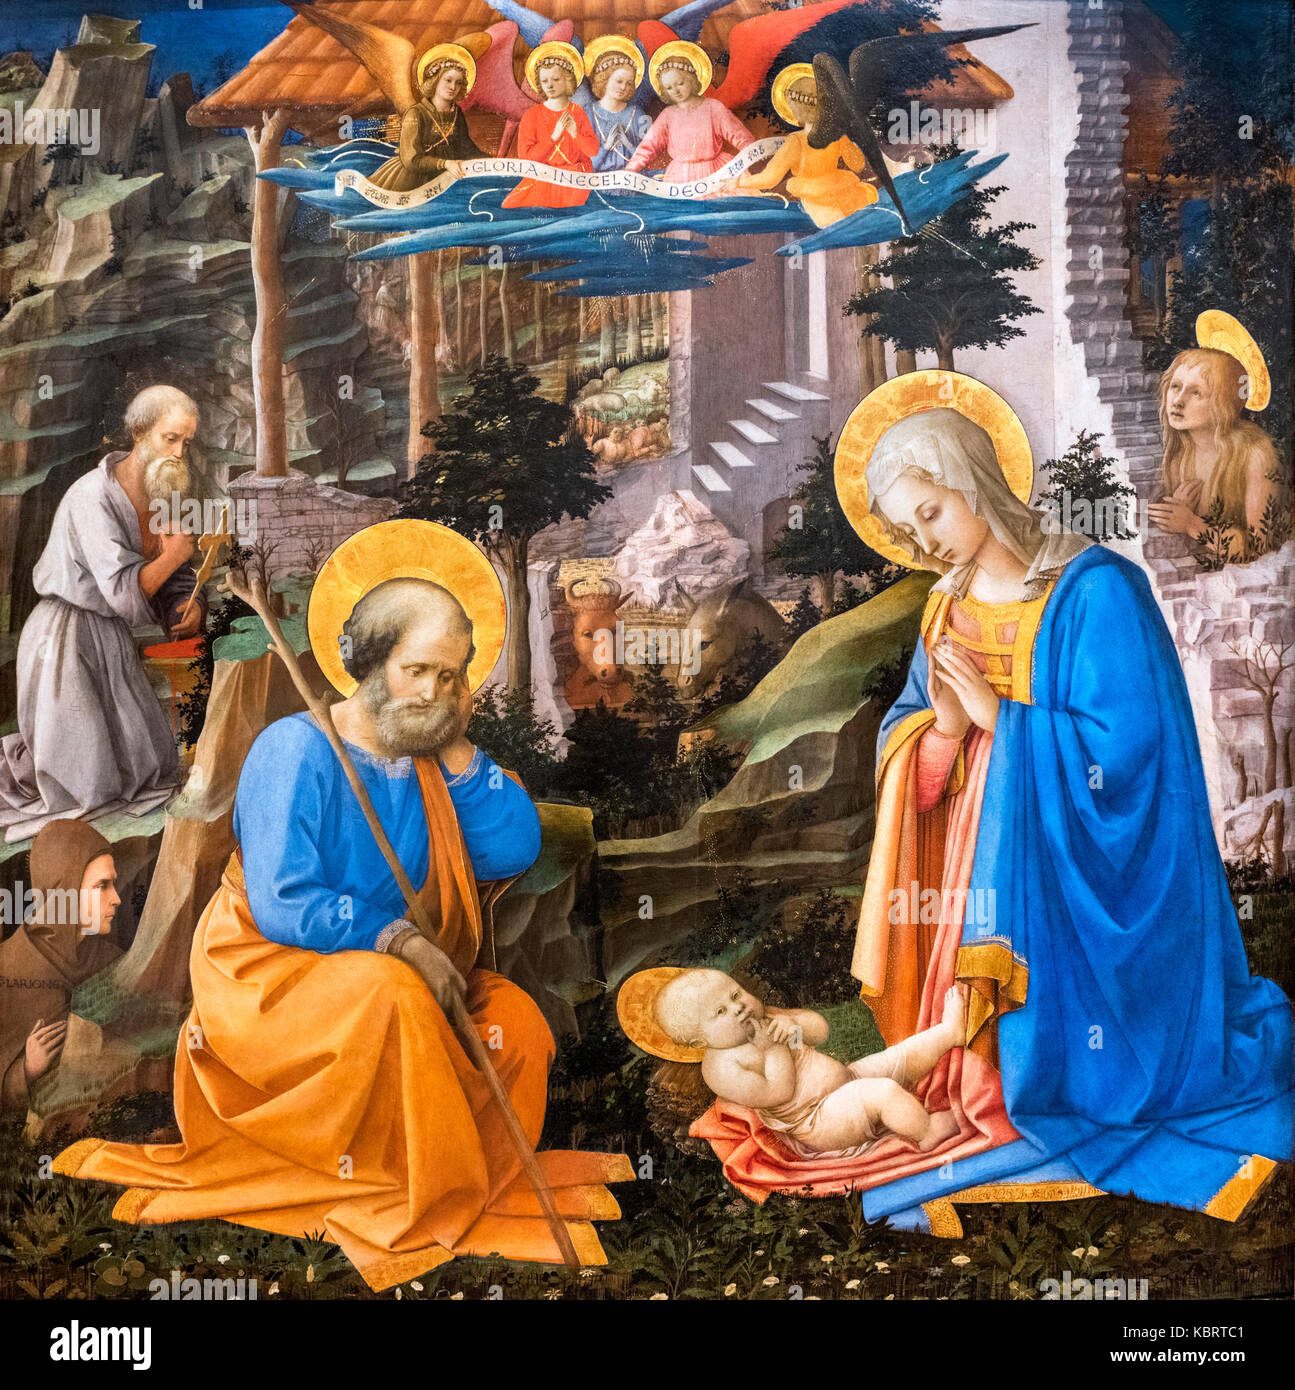 Adoration of the Christ Child with St Joseph, St Jerome, St Hilarion, St Mary Magdalene and Angels by Filippo Lippi - Stock Image